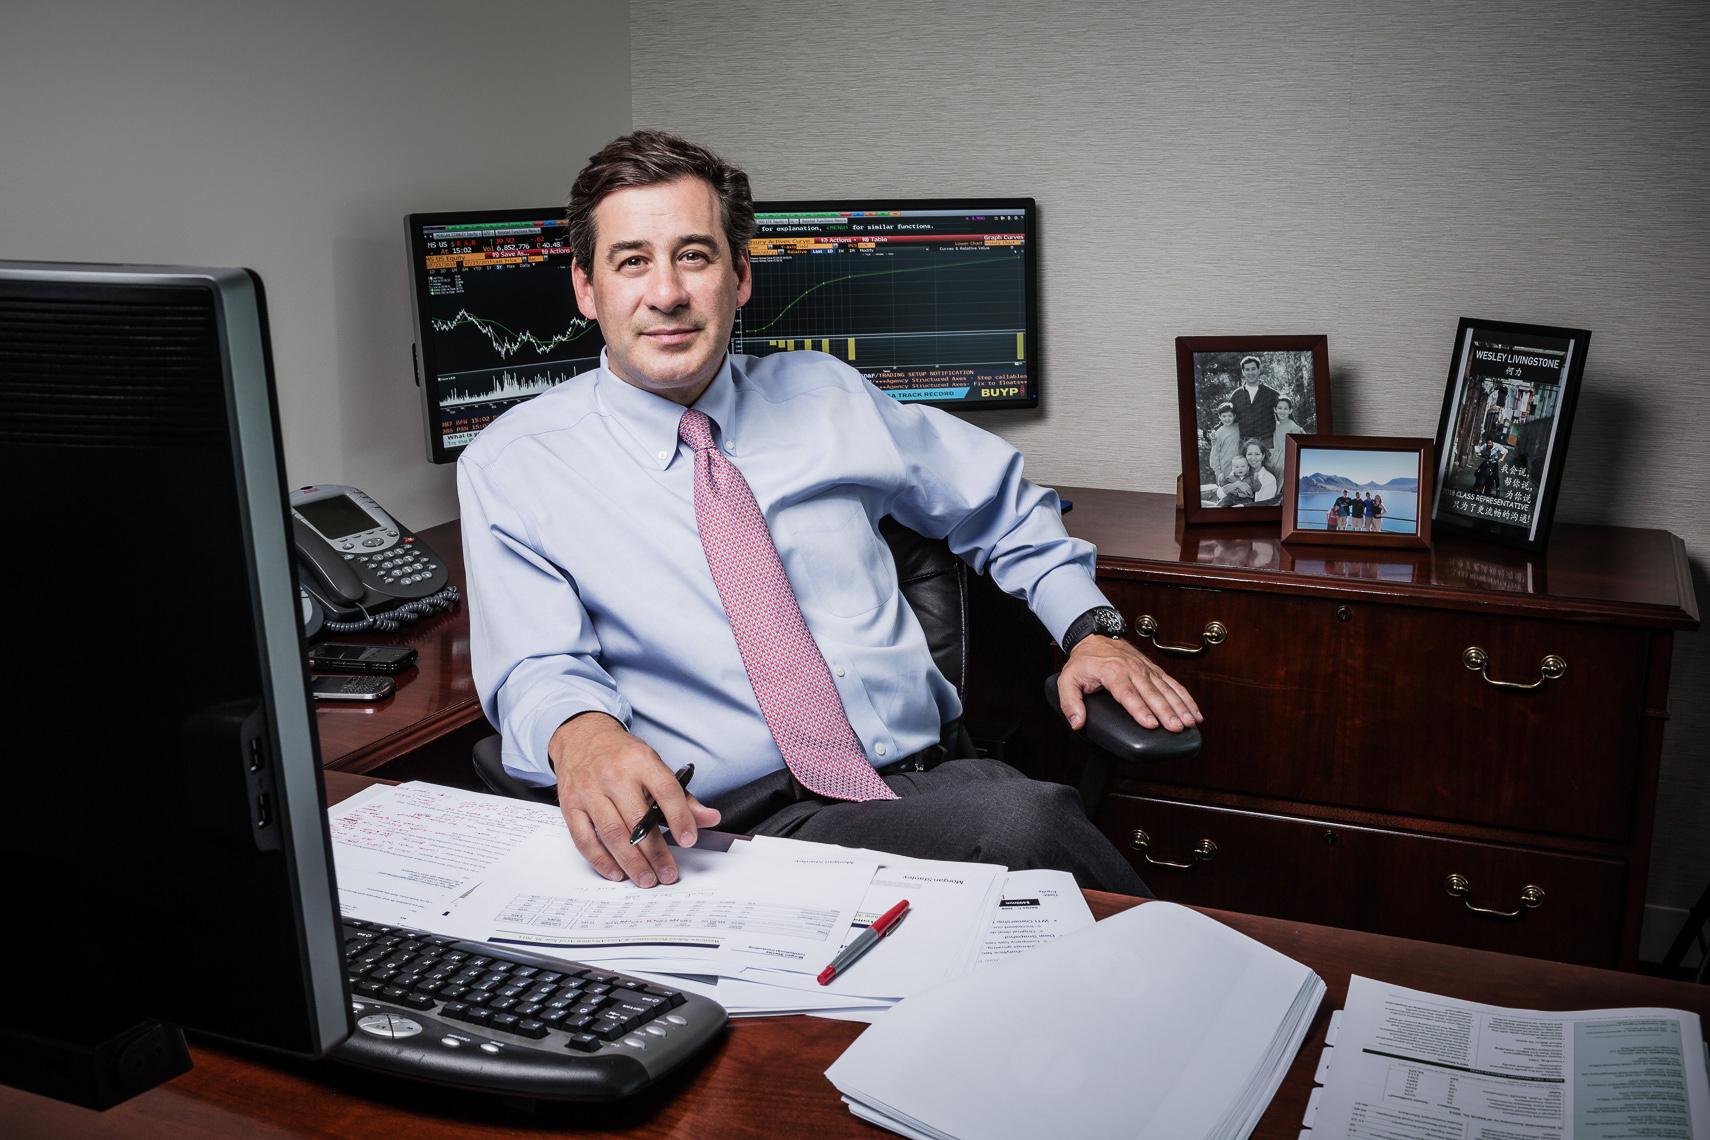 VICTOR LIVINGSTONE • MORGAN STANLEY PERSONAL WEALTH MANAGEMENT • JASON GROW PHOTOGRAPHY